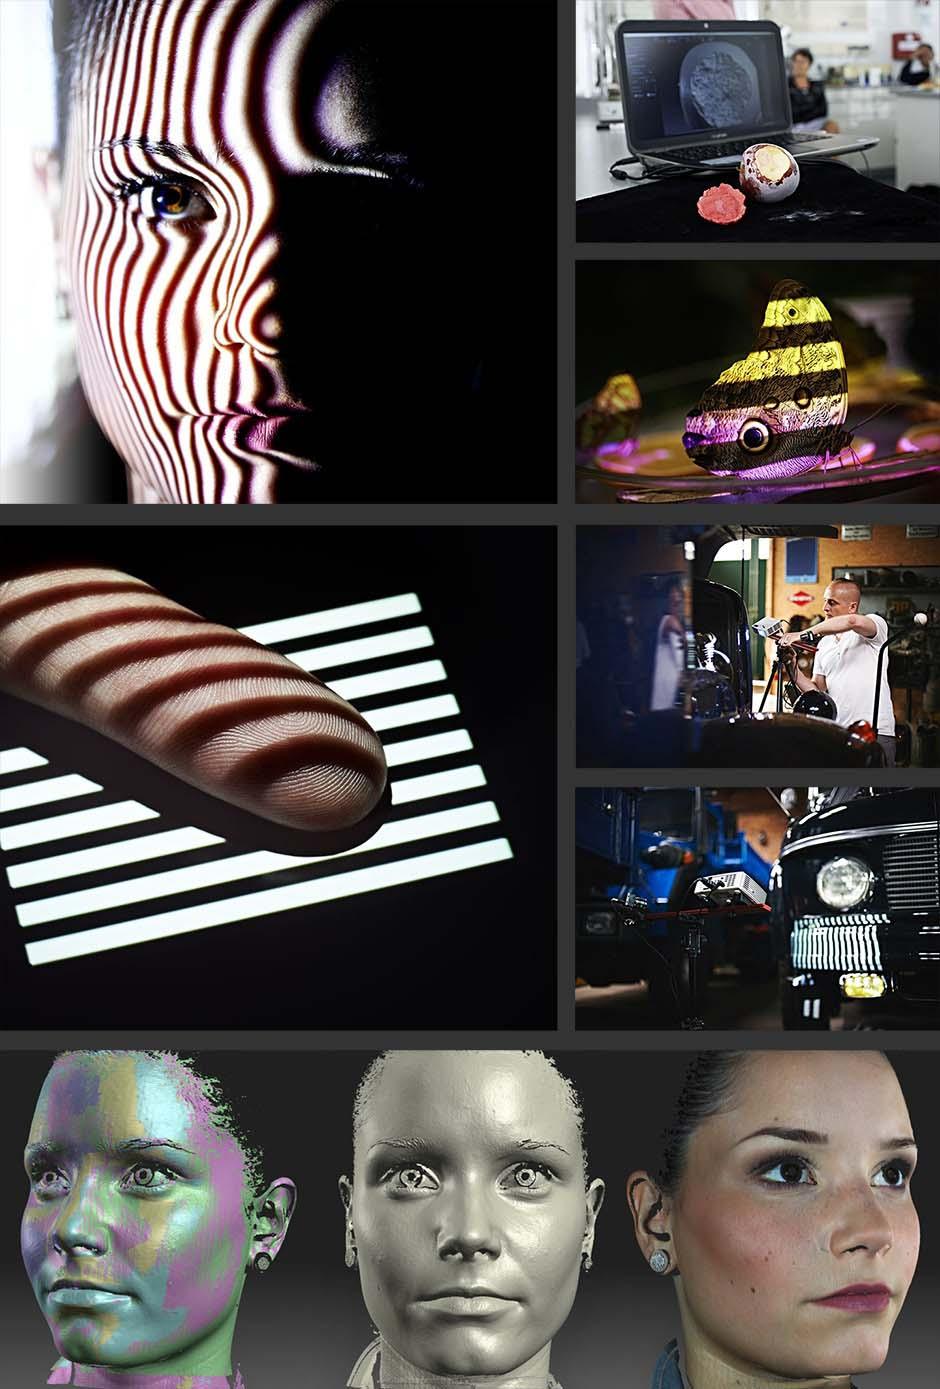 david-3d-scanner-applications